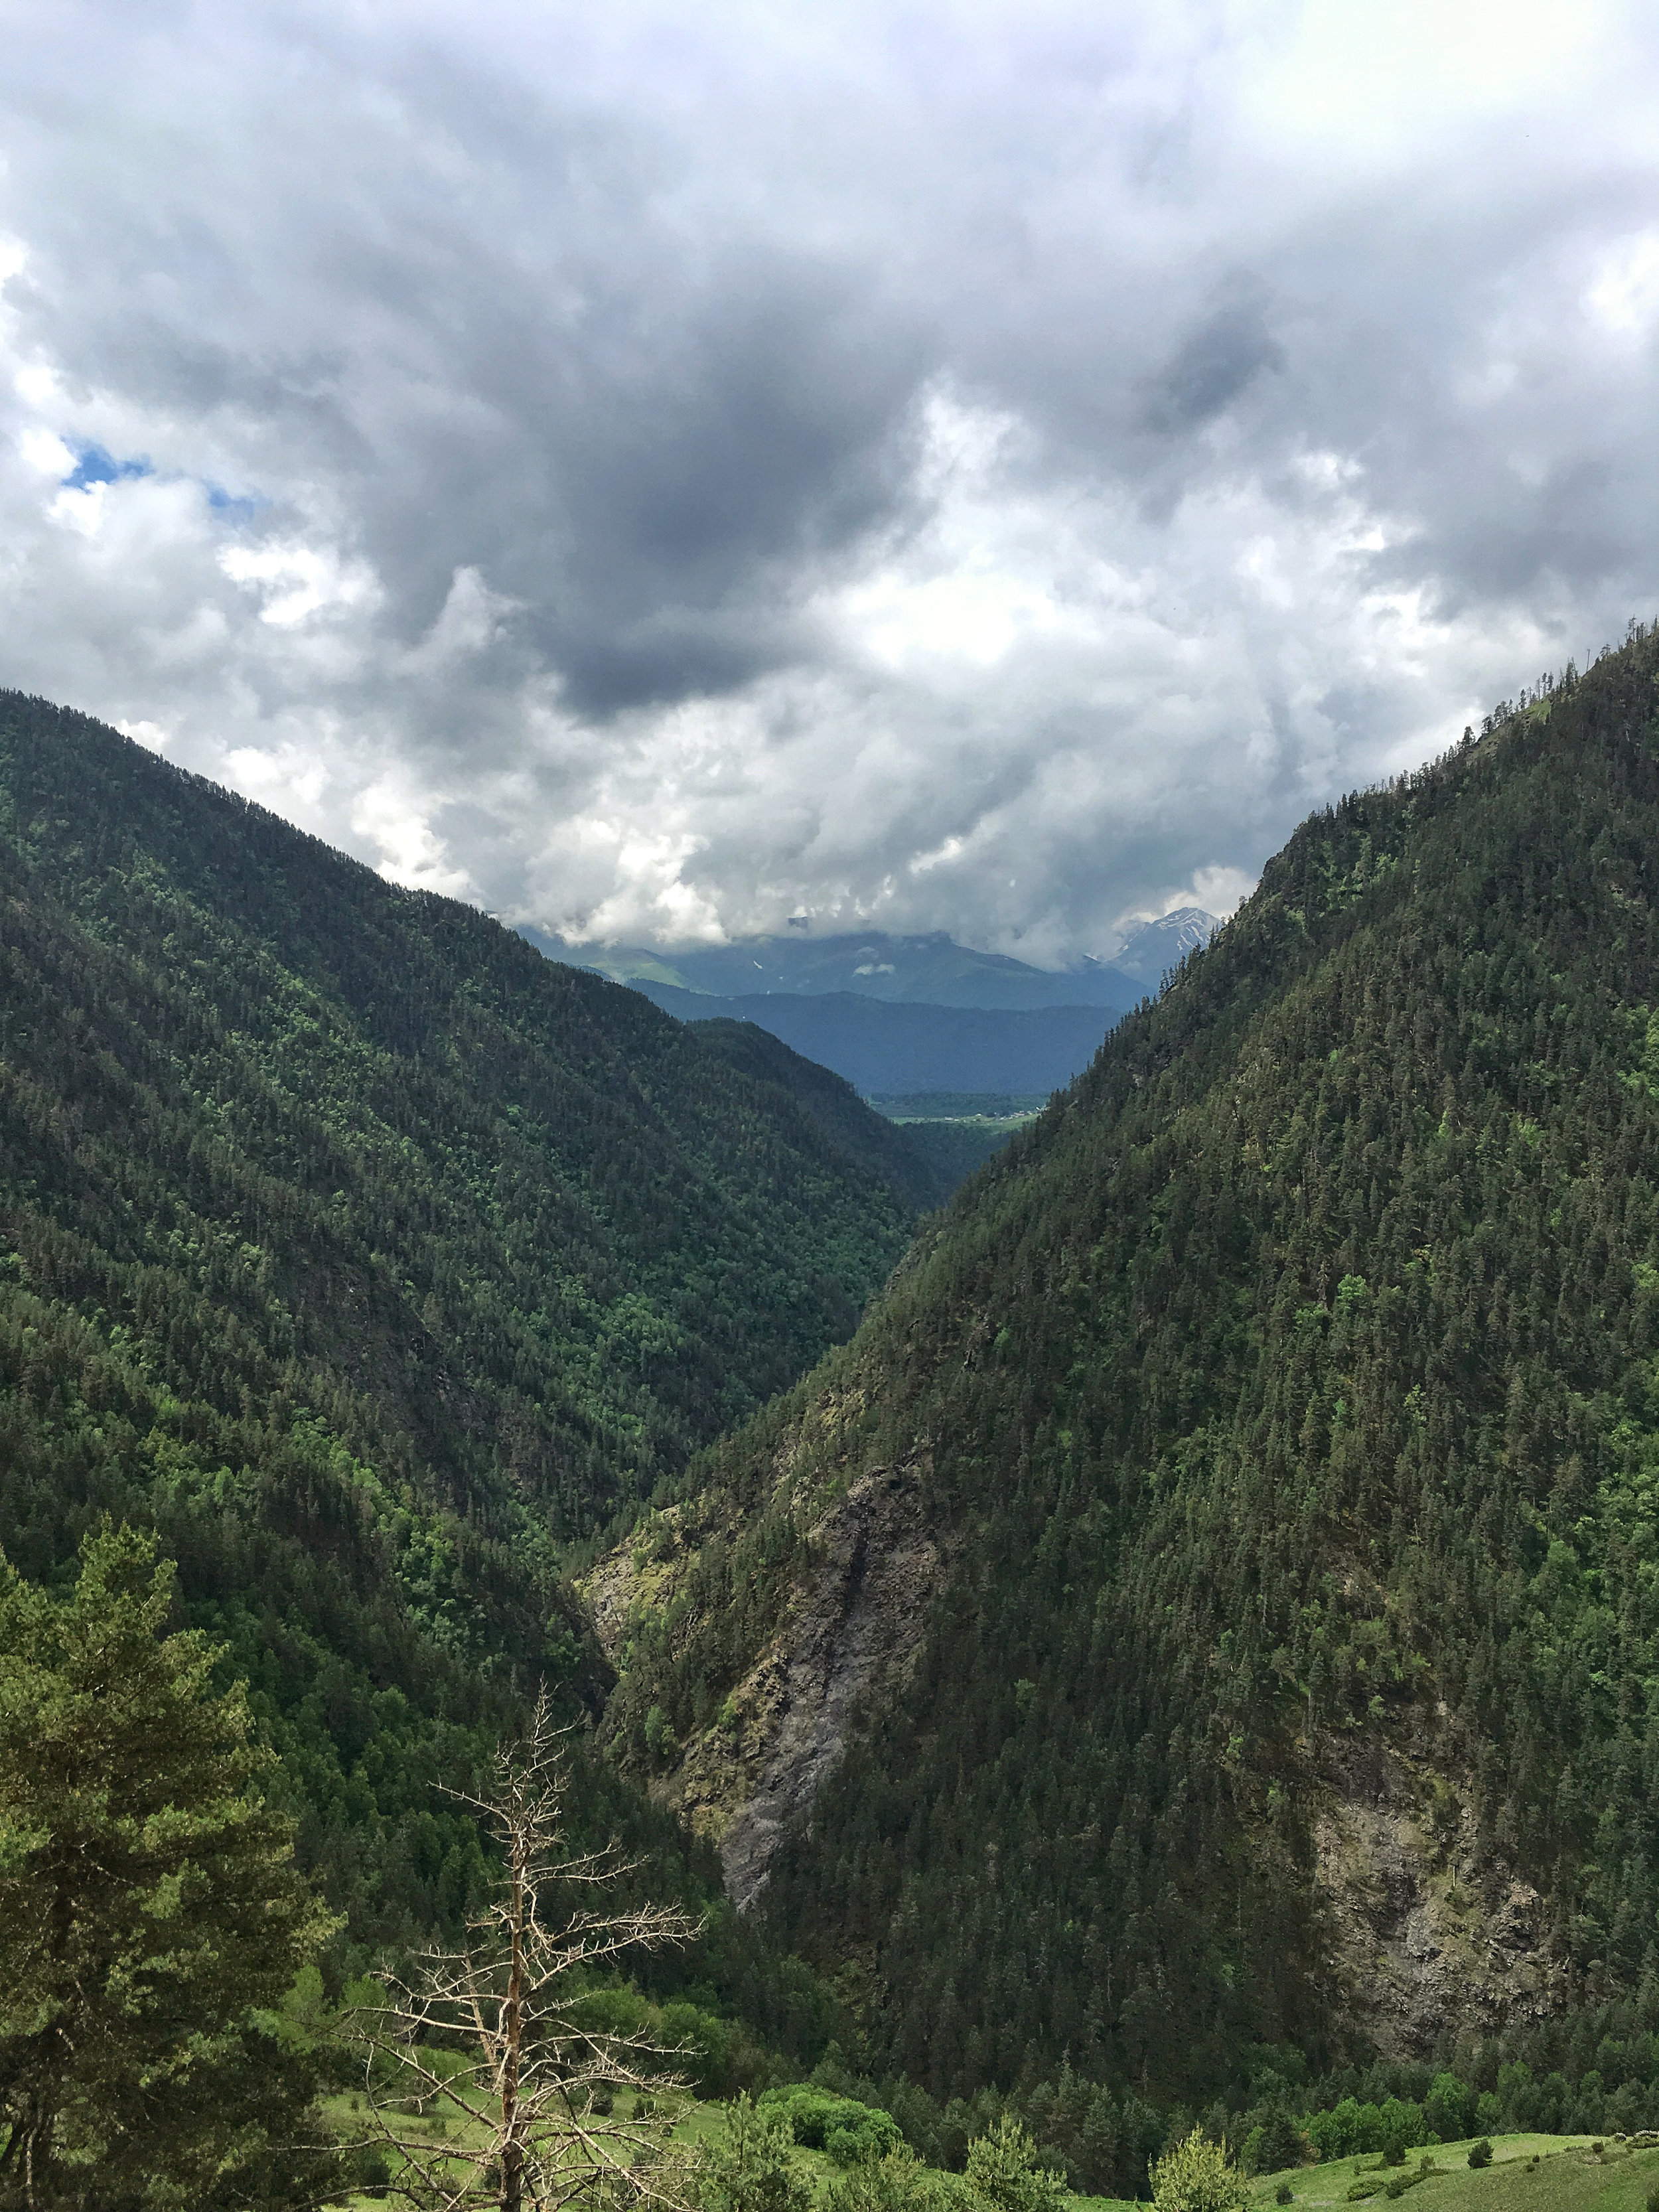 Pine trees and virgin birch forests fill these early valleys